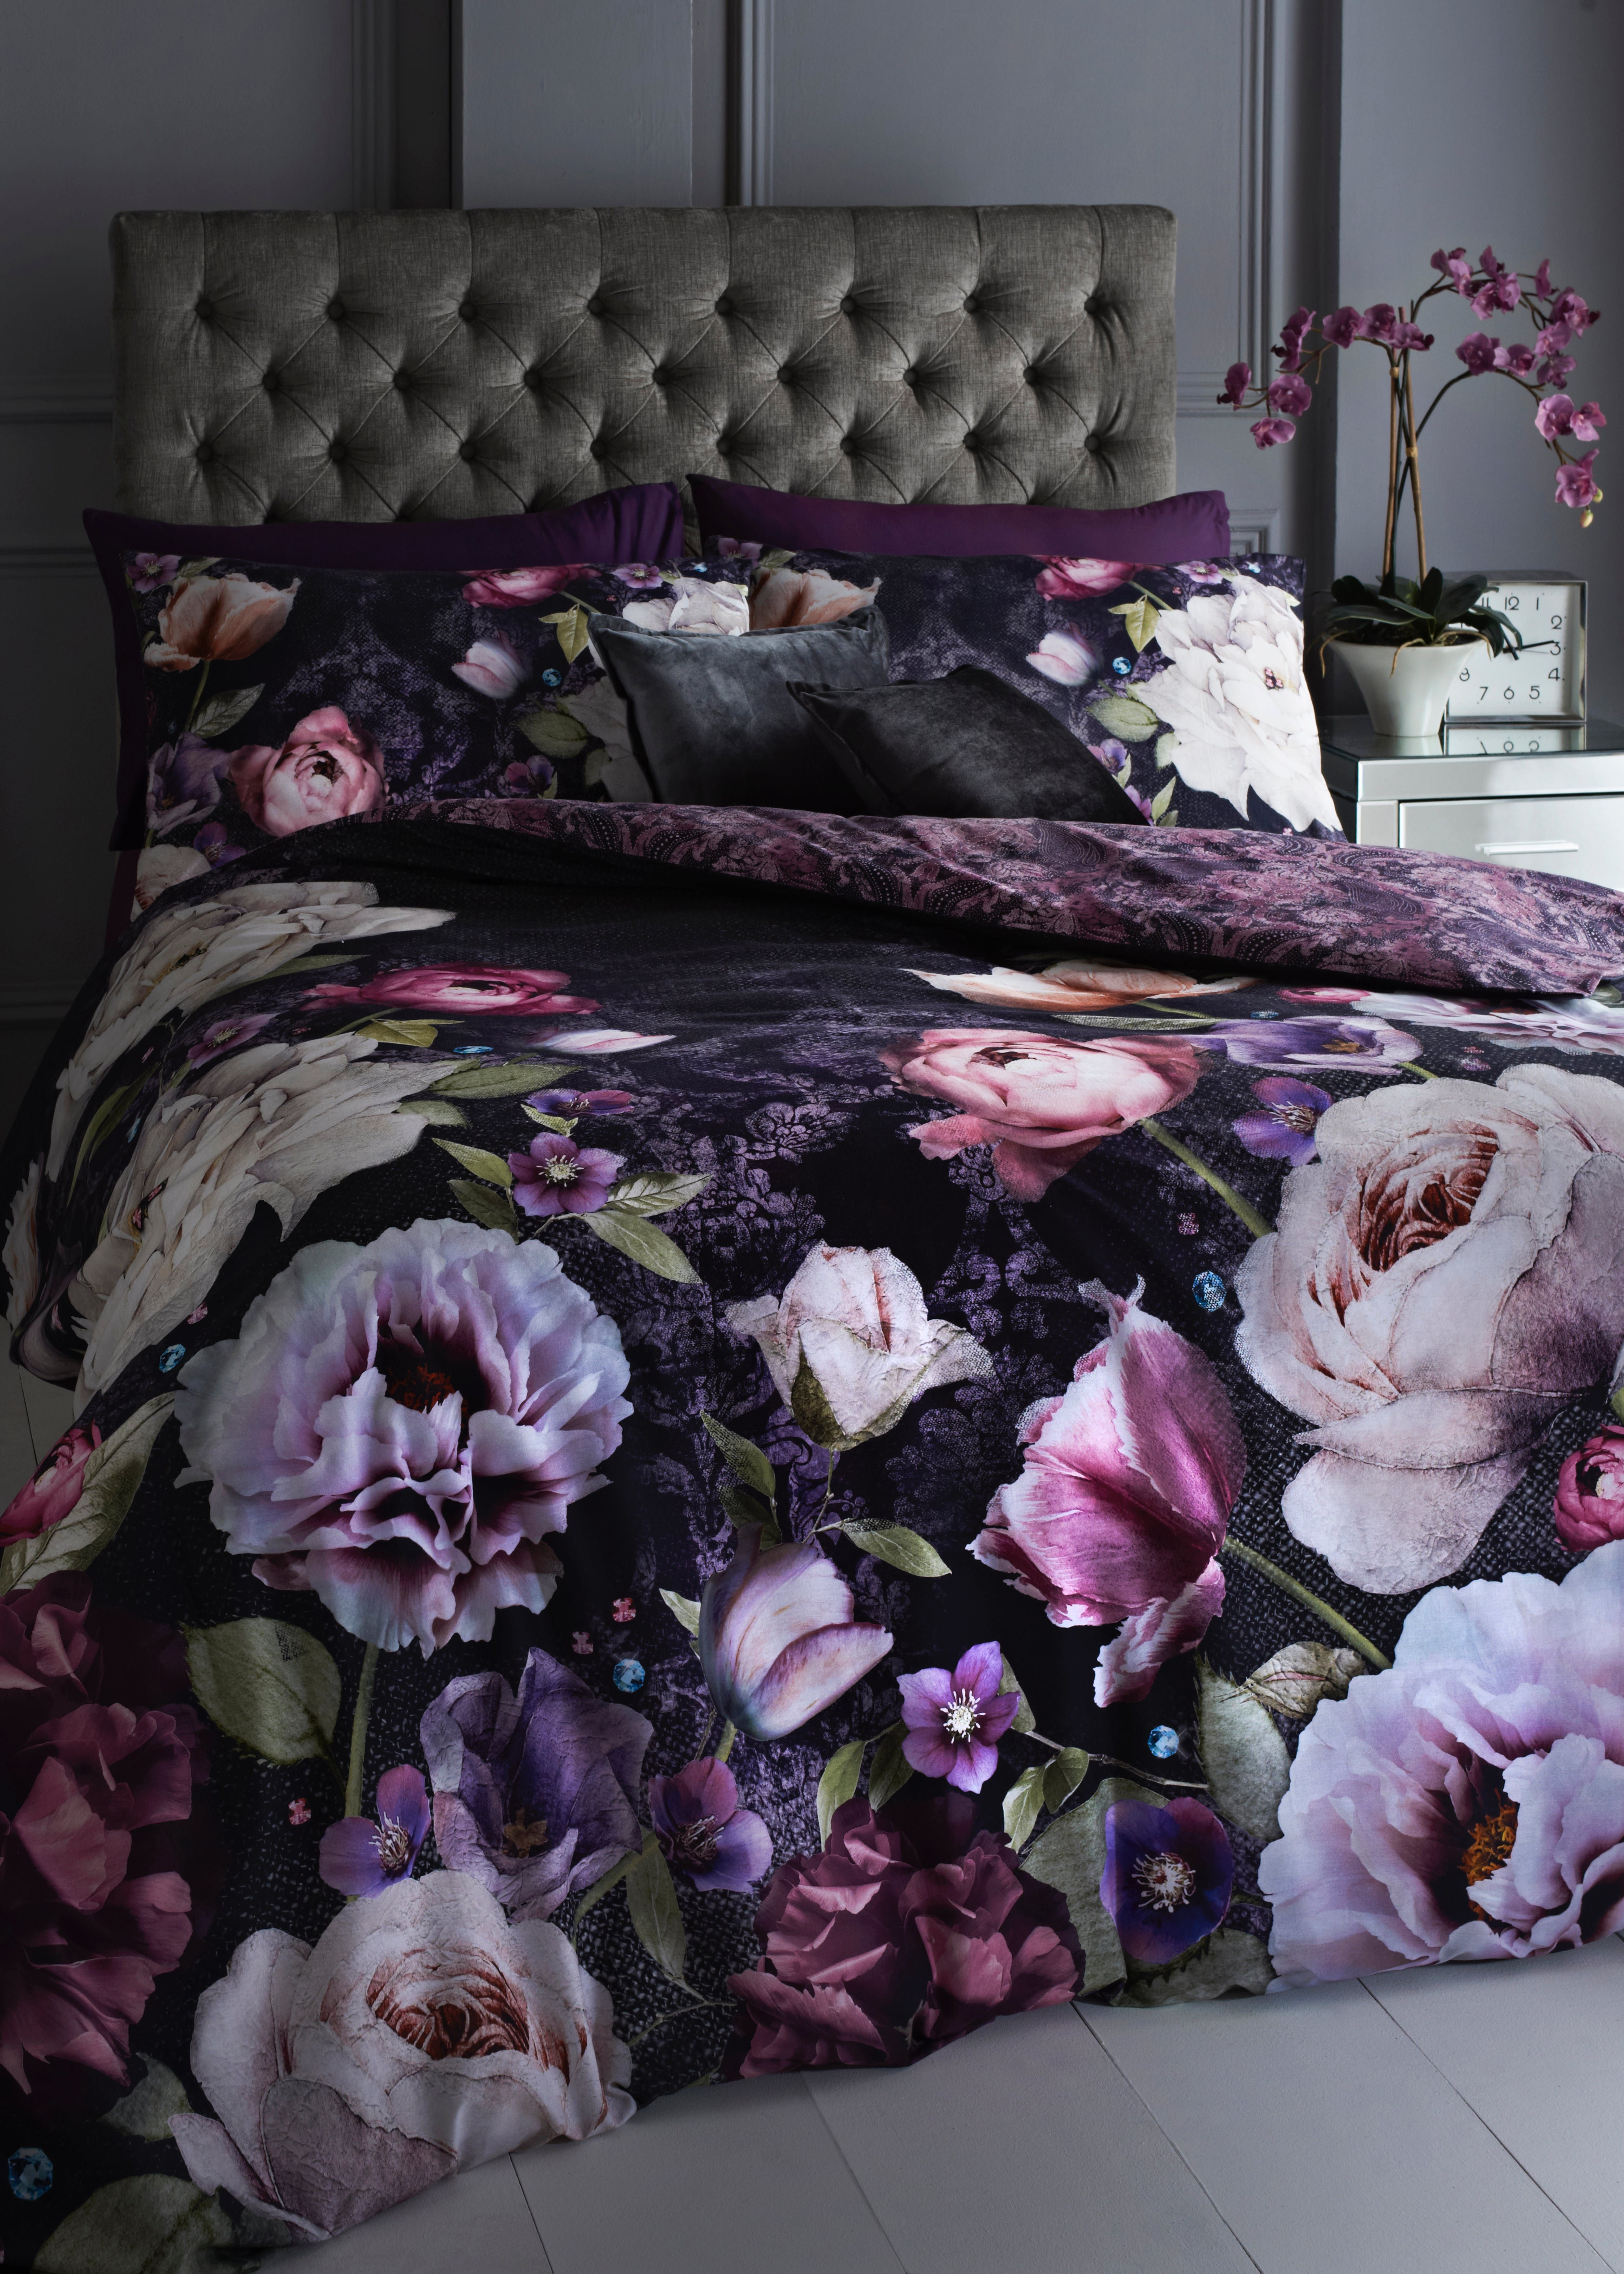 covers king her baker home p duvet remove and cover black blaner bloom for ted mens uk gifts cosmic